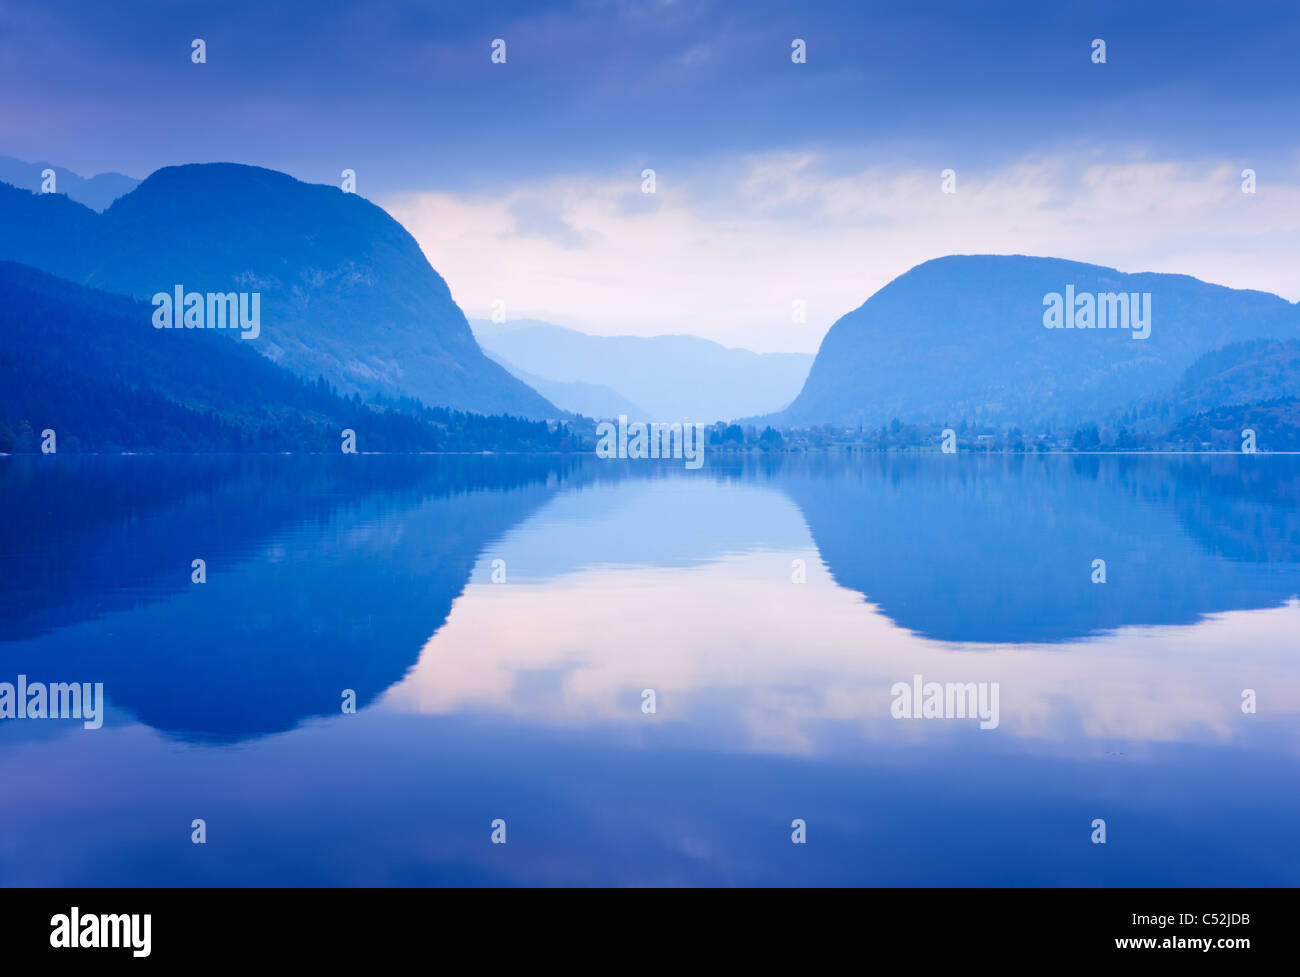 Blue mountains reflected in lake water. Bohinj lake, Slovenia. - Stock Image